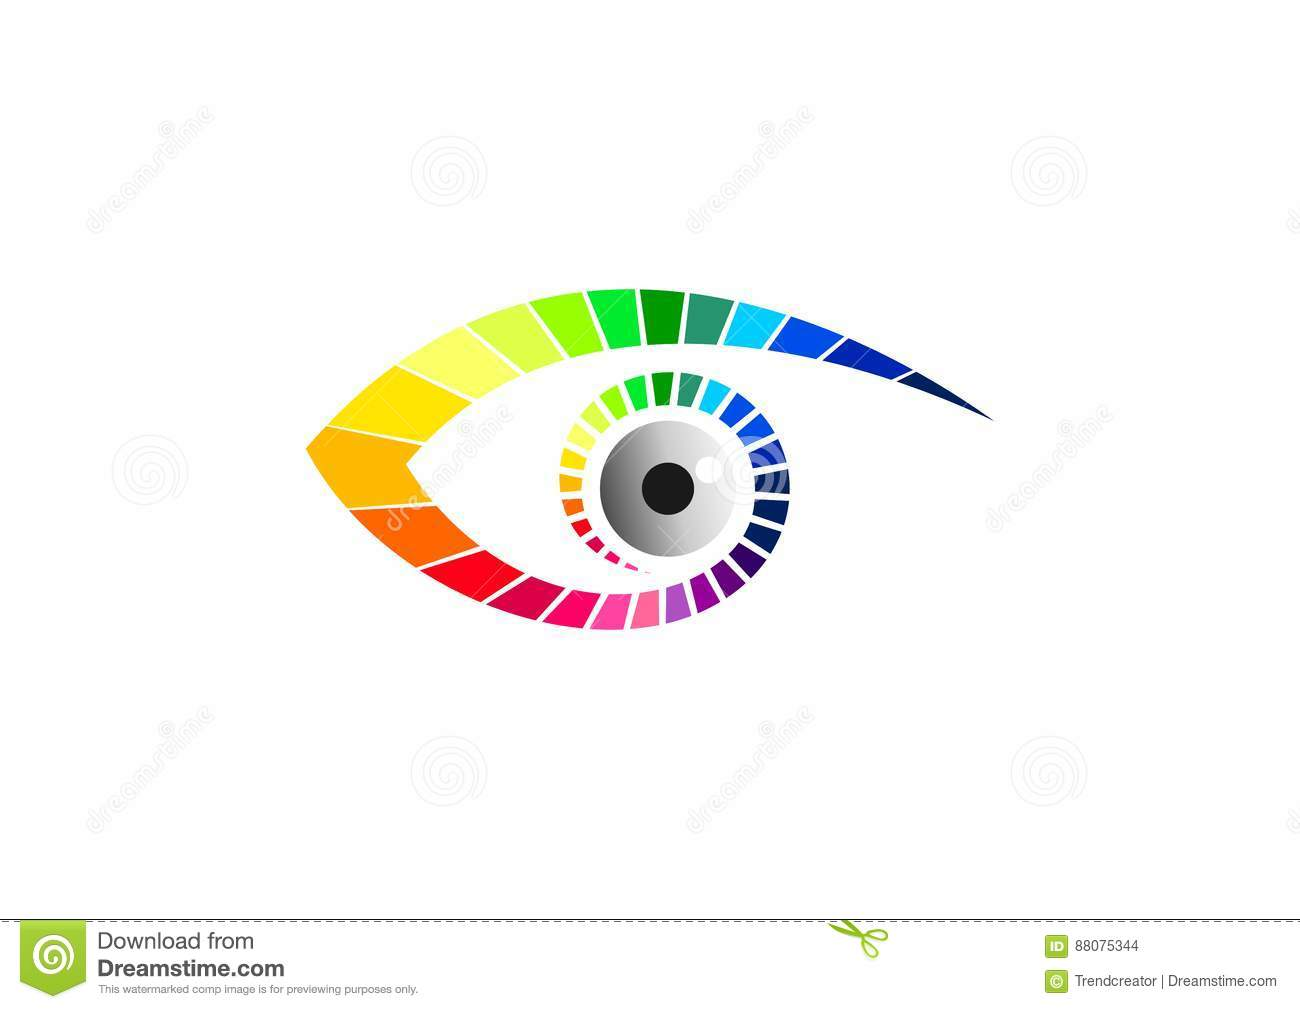 Eye logo, optic symbol, fashion glasses icon, beauty visual brand, luxury vision graphic, and contact lens concept design